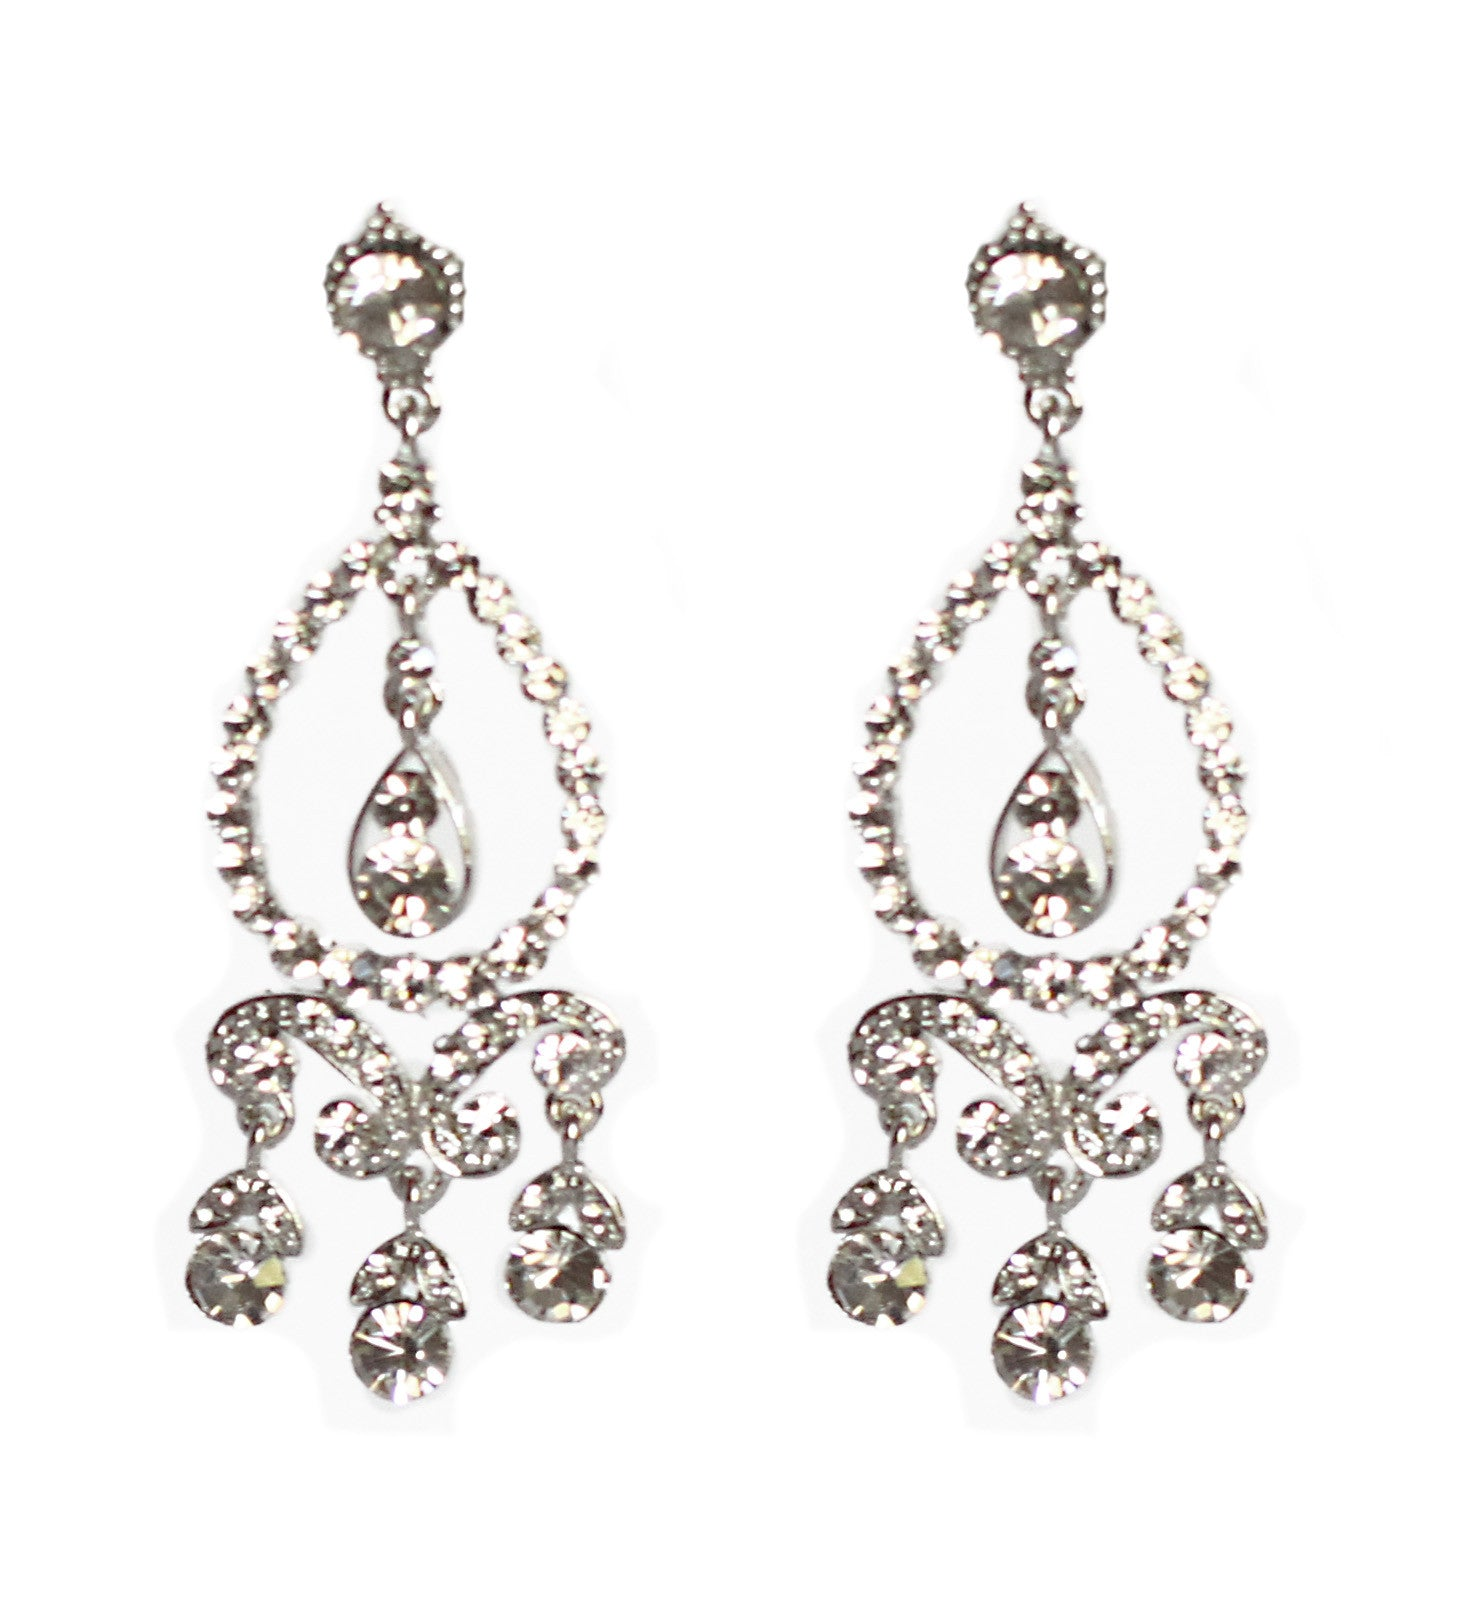 Leah Bridal Earrings - Perle Jewellery & Makeup  - 1